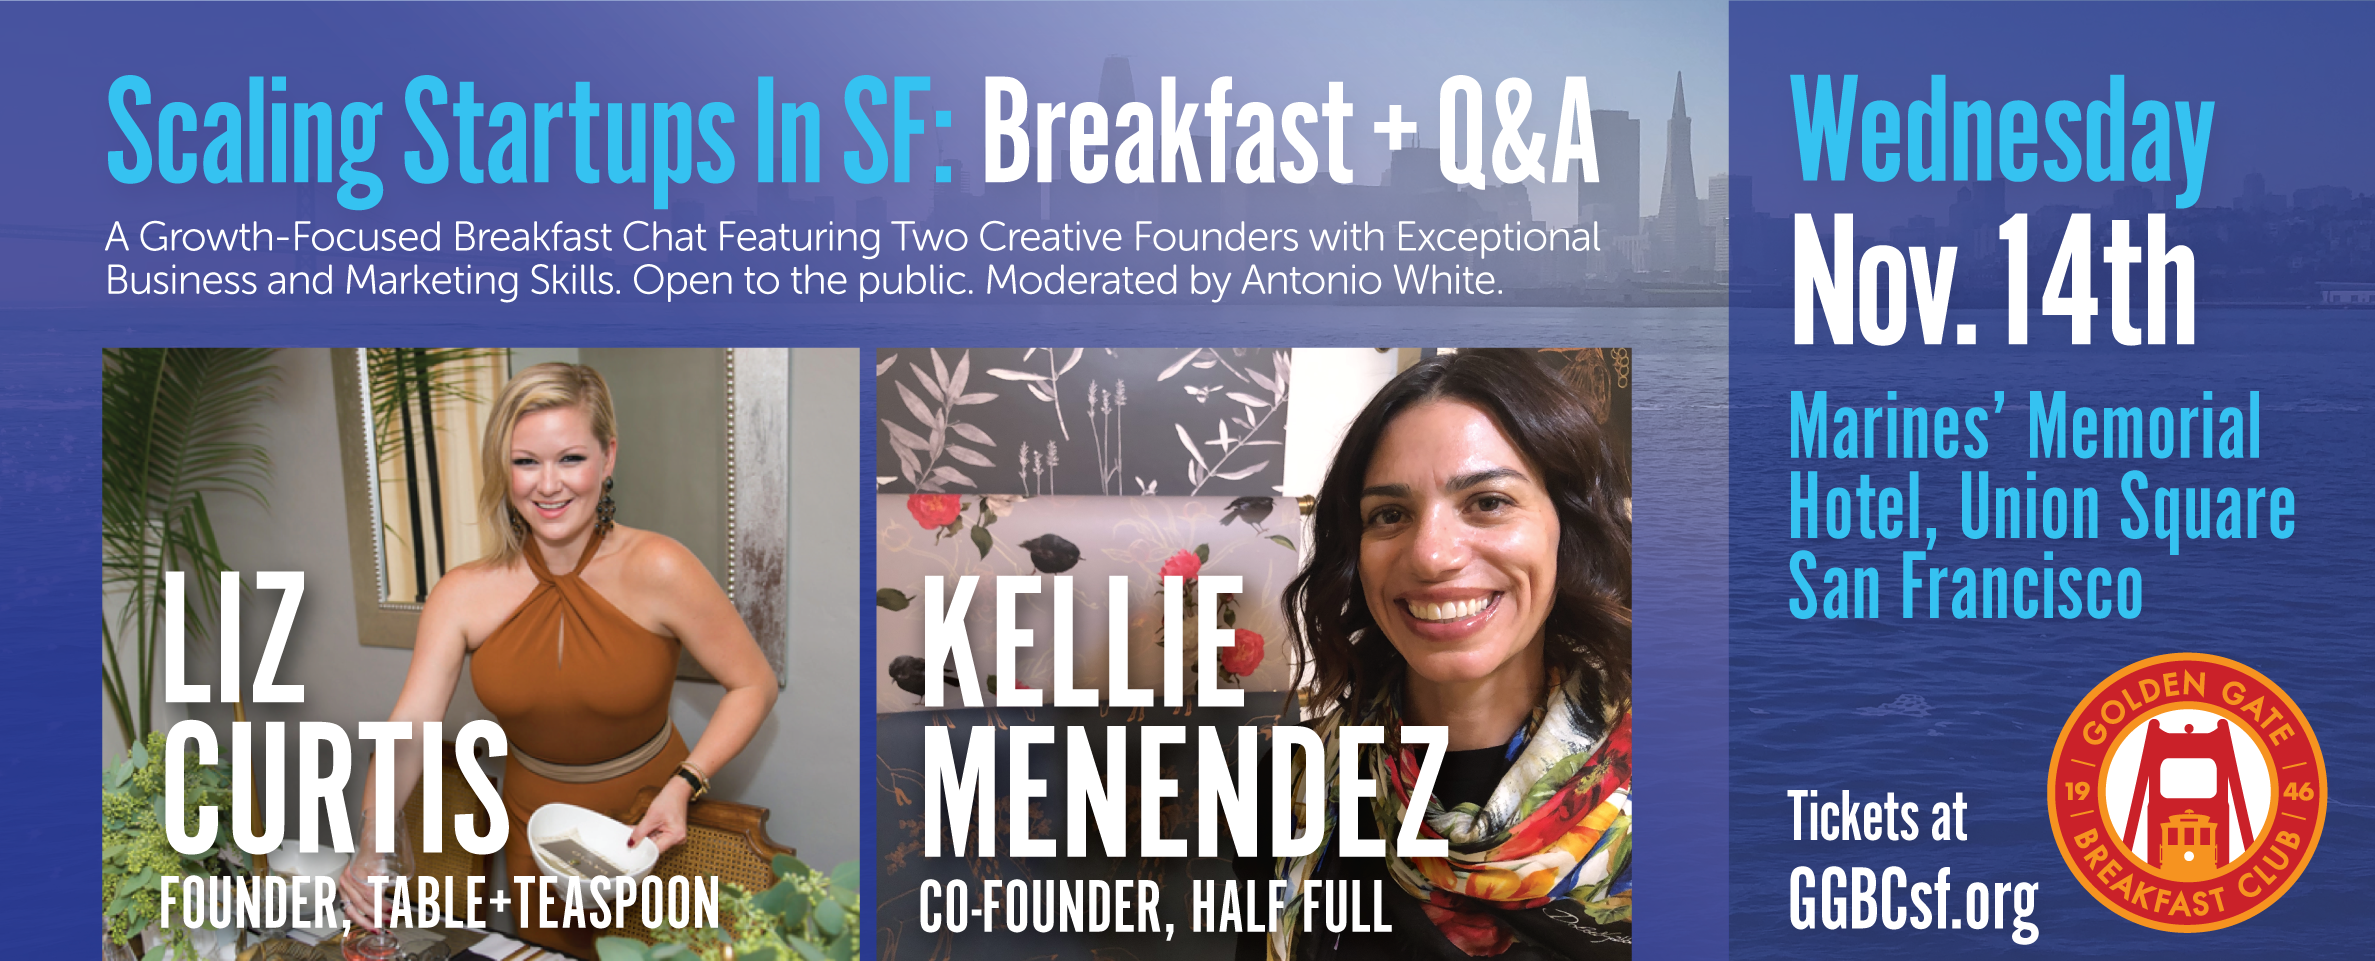 Scaling Startups in San Francisco: Breakfast + Q&A with SF Entrepreneurial Rockstars, Liz Curtis and Kellie Menendez  With all the focus on high tech business in San Francisco, you may be surprised to learn about the rebirth of the San Francisco's Creative Industry. Hear from two exceptional Start-Up founders with deep business and professional experience as they share their stories of scaling their creative- focused start-ups in San Francisco, leveraging both the Internet as well as physical storefronts. You'll have a chance to meet the founders of Table+Teaspoon and Half Full as well as participate in a Q&A Session. This breakfast chat is part of the Golden Gate Breakfast Club's Getting Business to Scale Series. The chat with be moderated by GGBC Club President and veteran start-up marketing pro, Antonio White